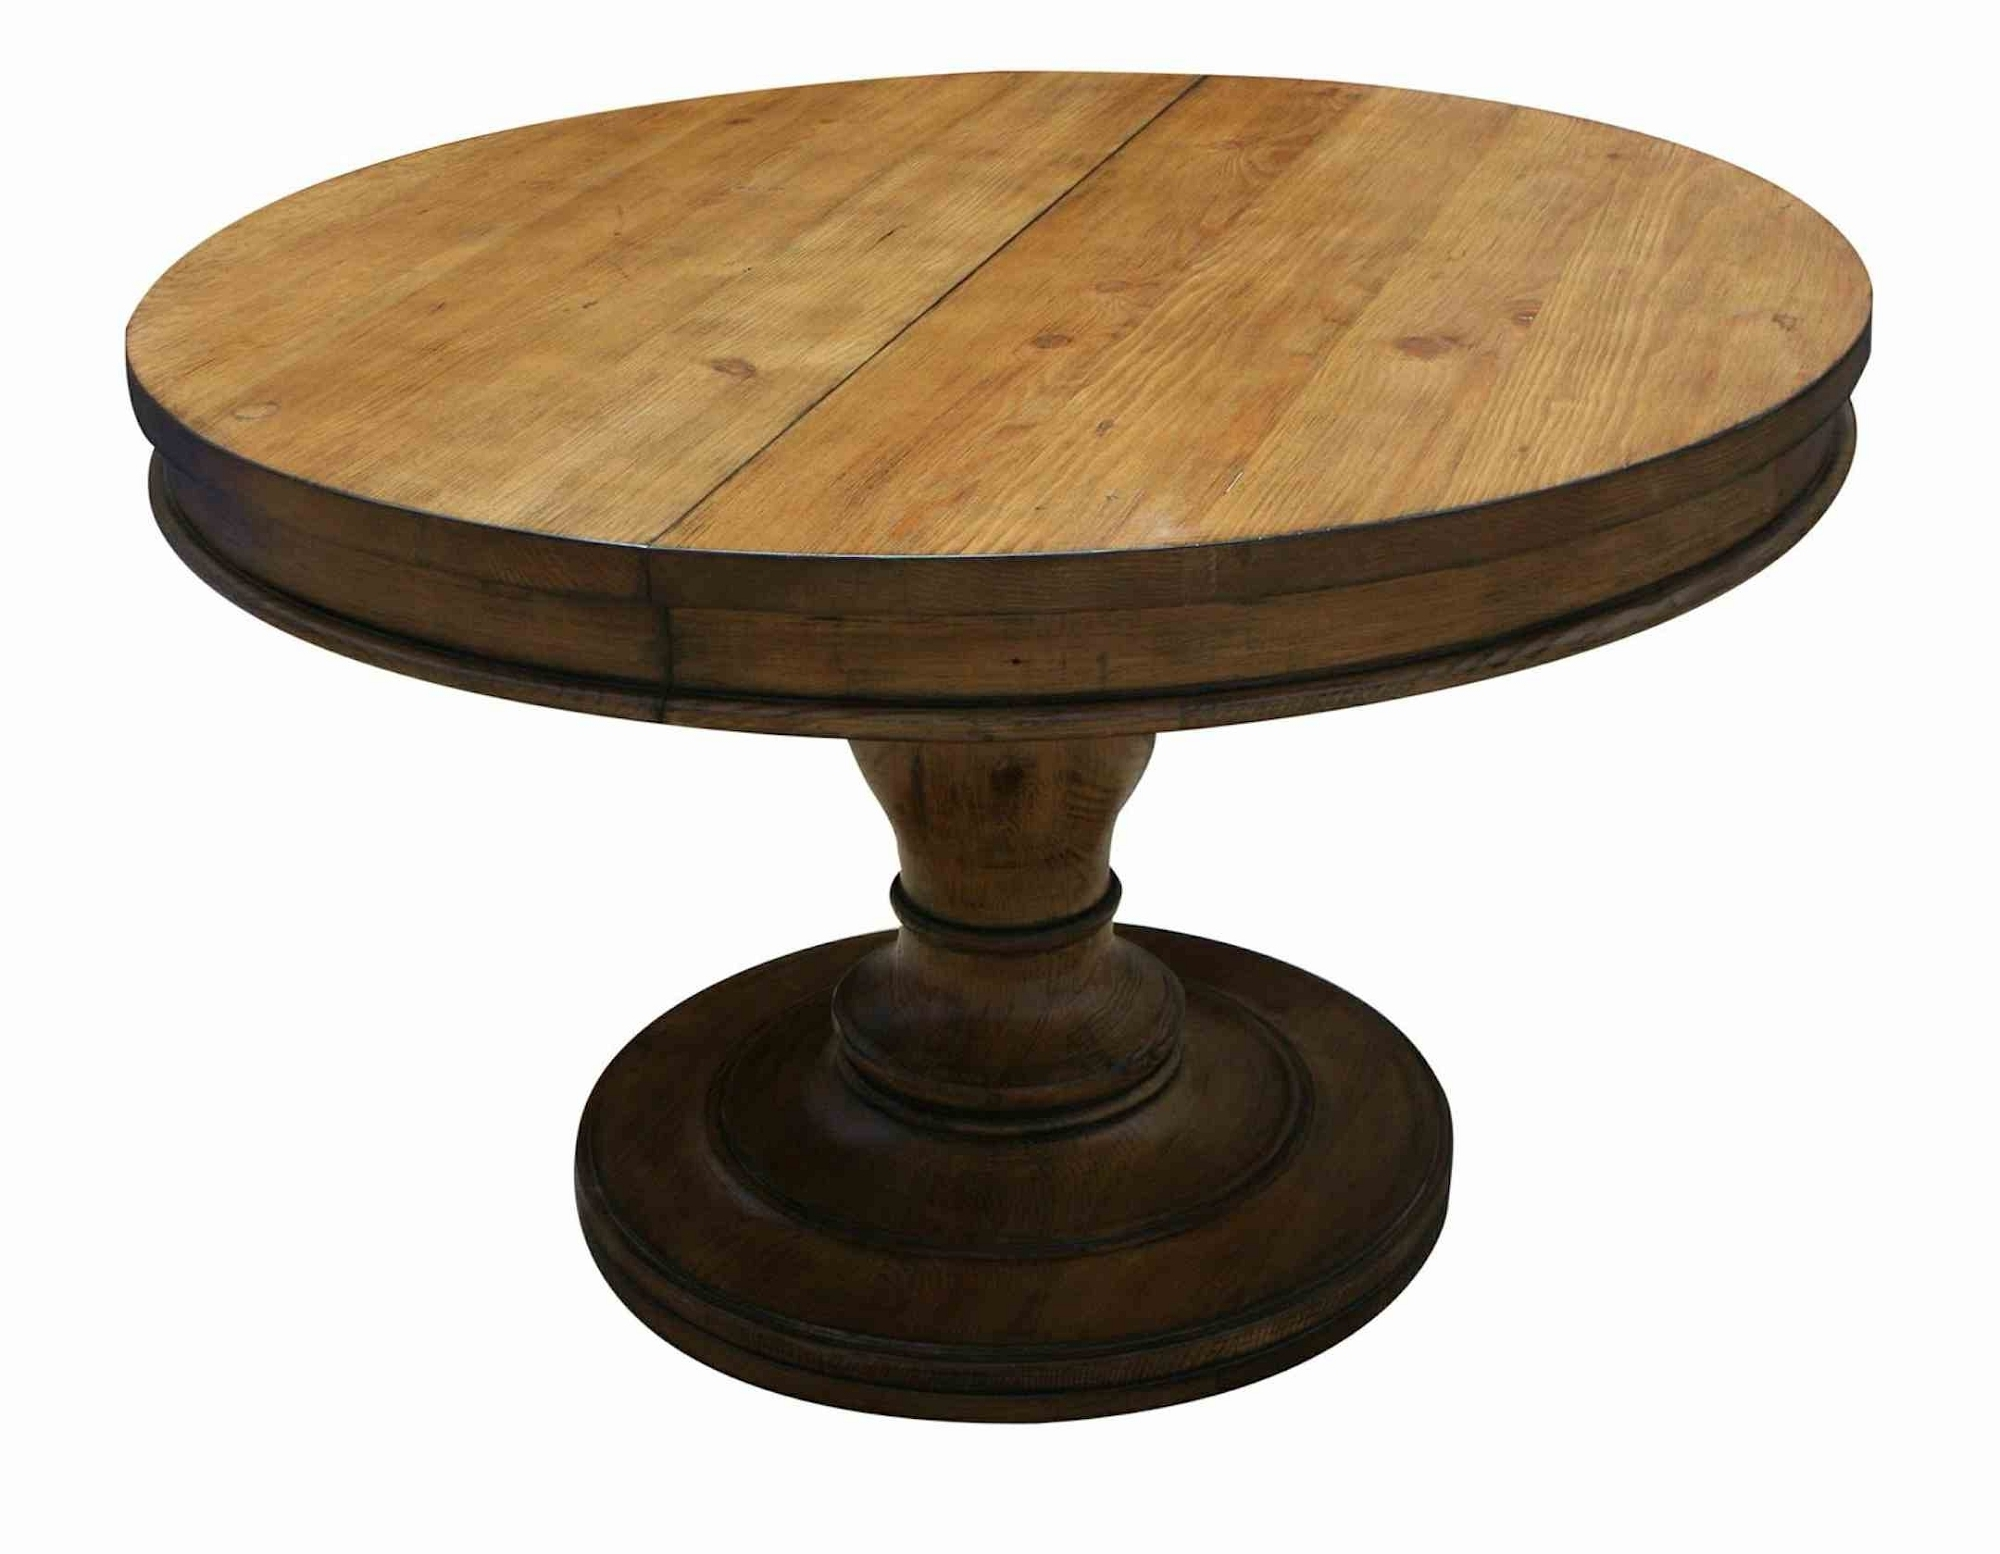 Cheap Round Dining Tables Regarding Trendy Cheap Rustic Round Extendable Dining Table Along With Made In (View 13 of 25)